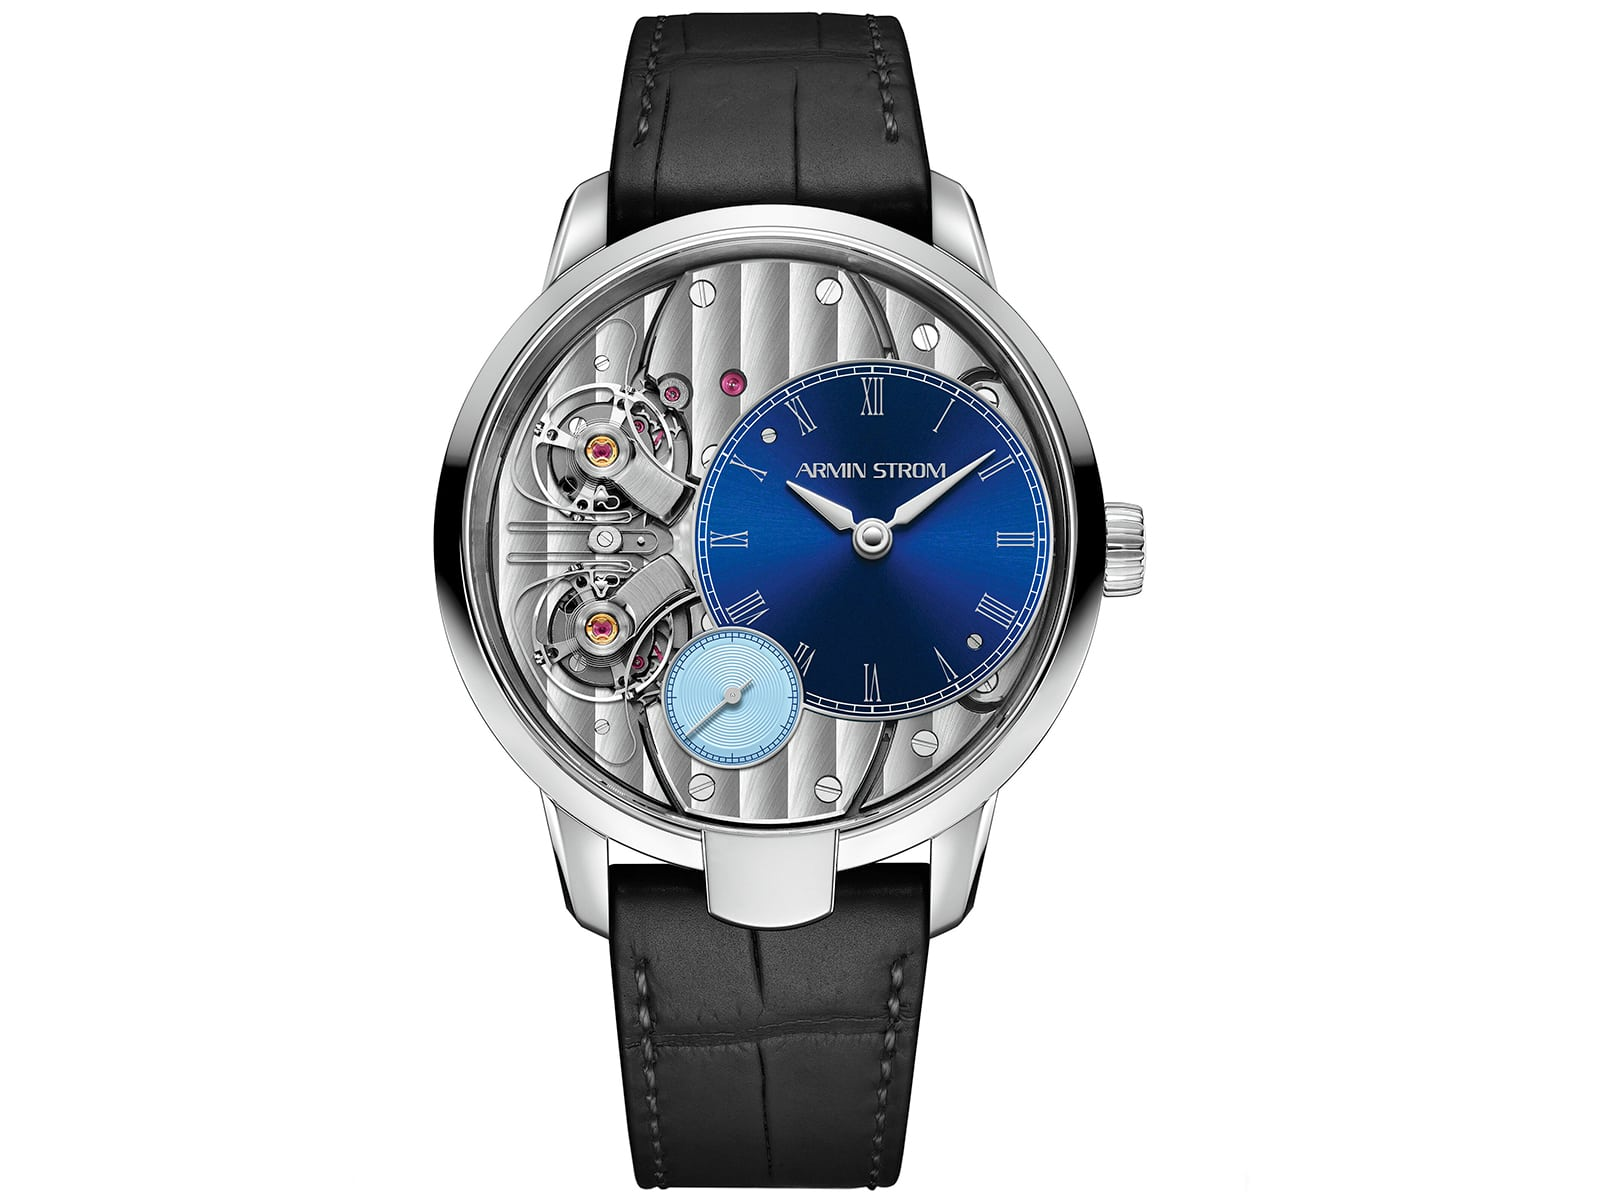 armin-strom-pure-resonance-only-watch-2019.jpg